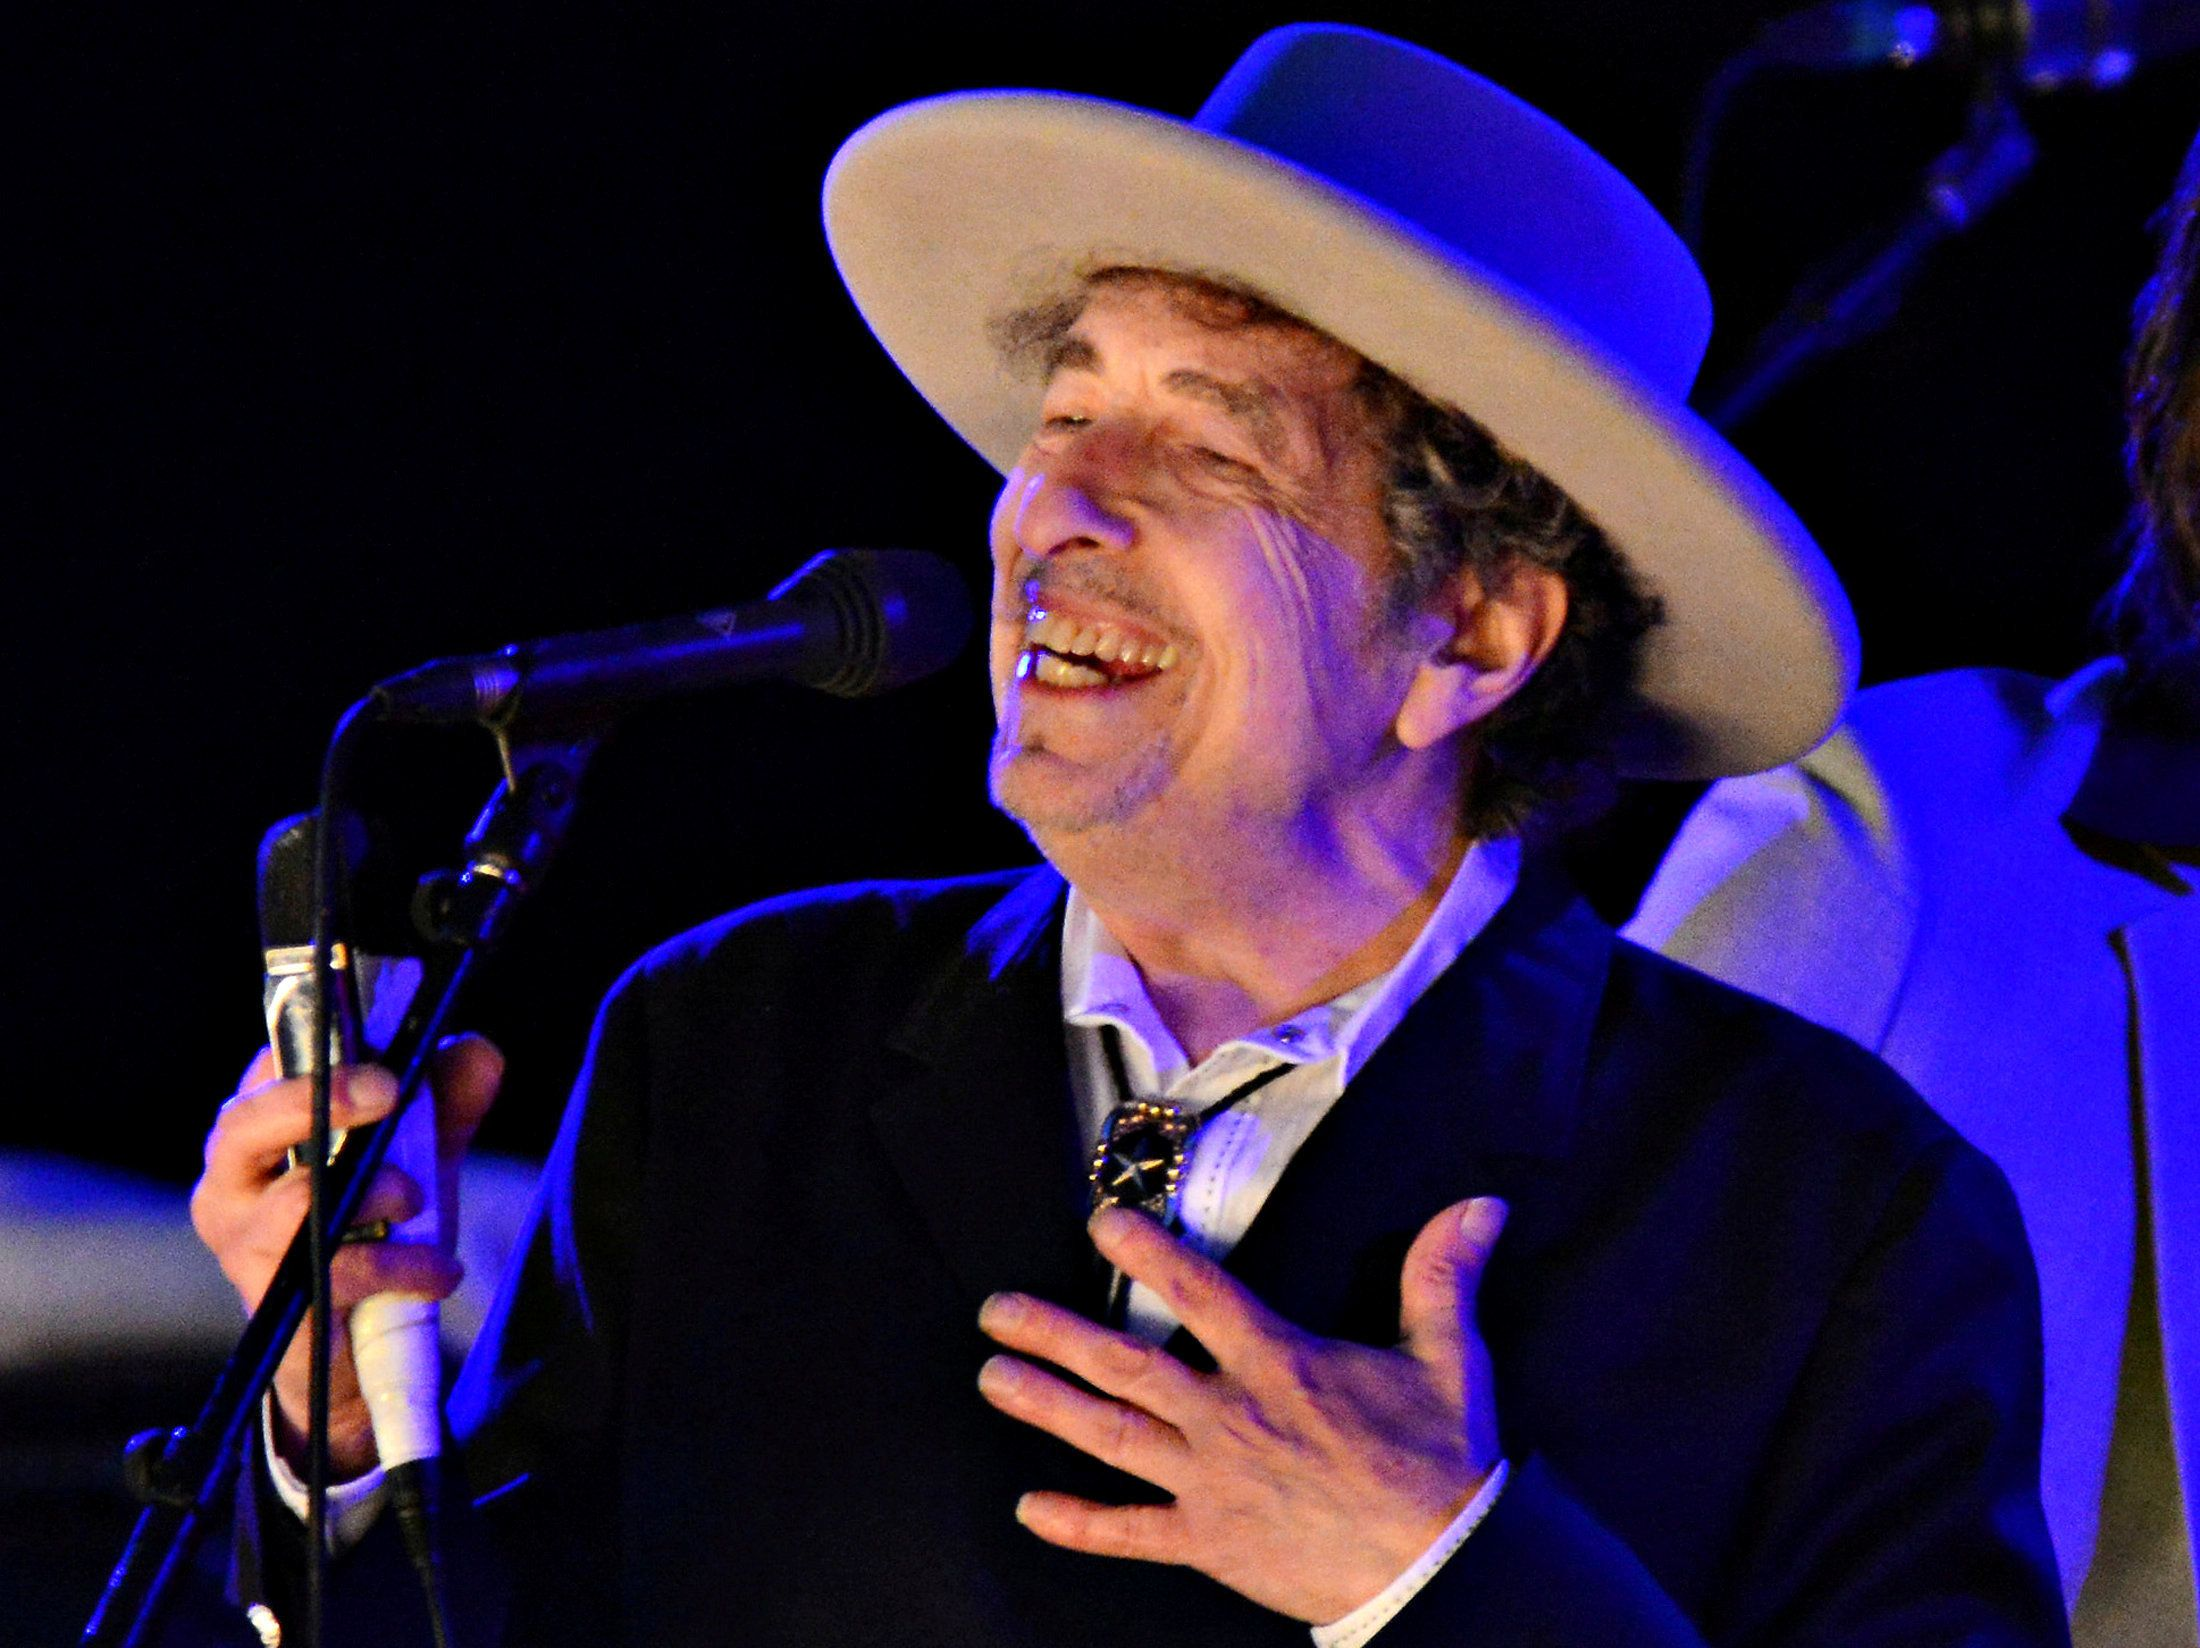 Bob Dylan Nobel Silence Called 'Impolite And Arrogant' By Academy